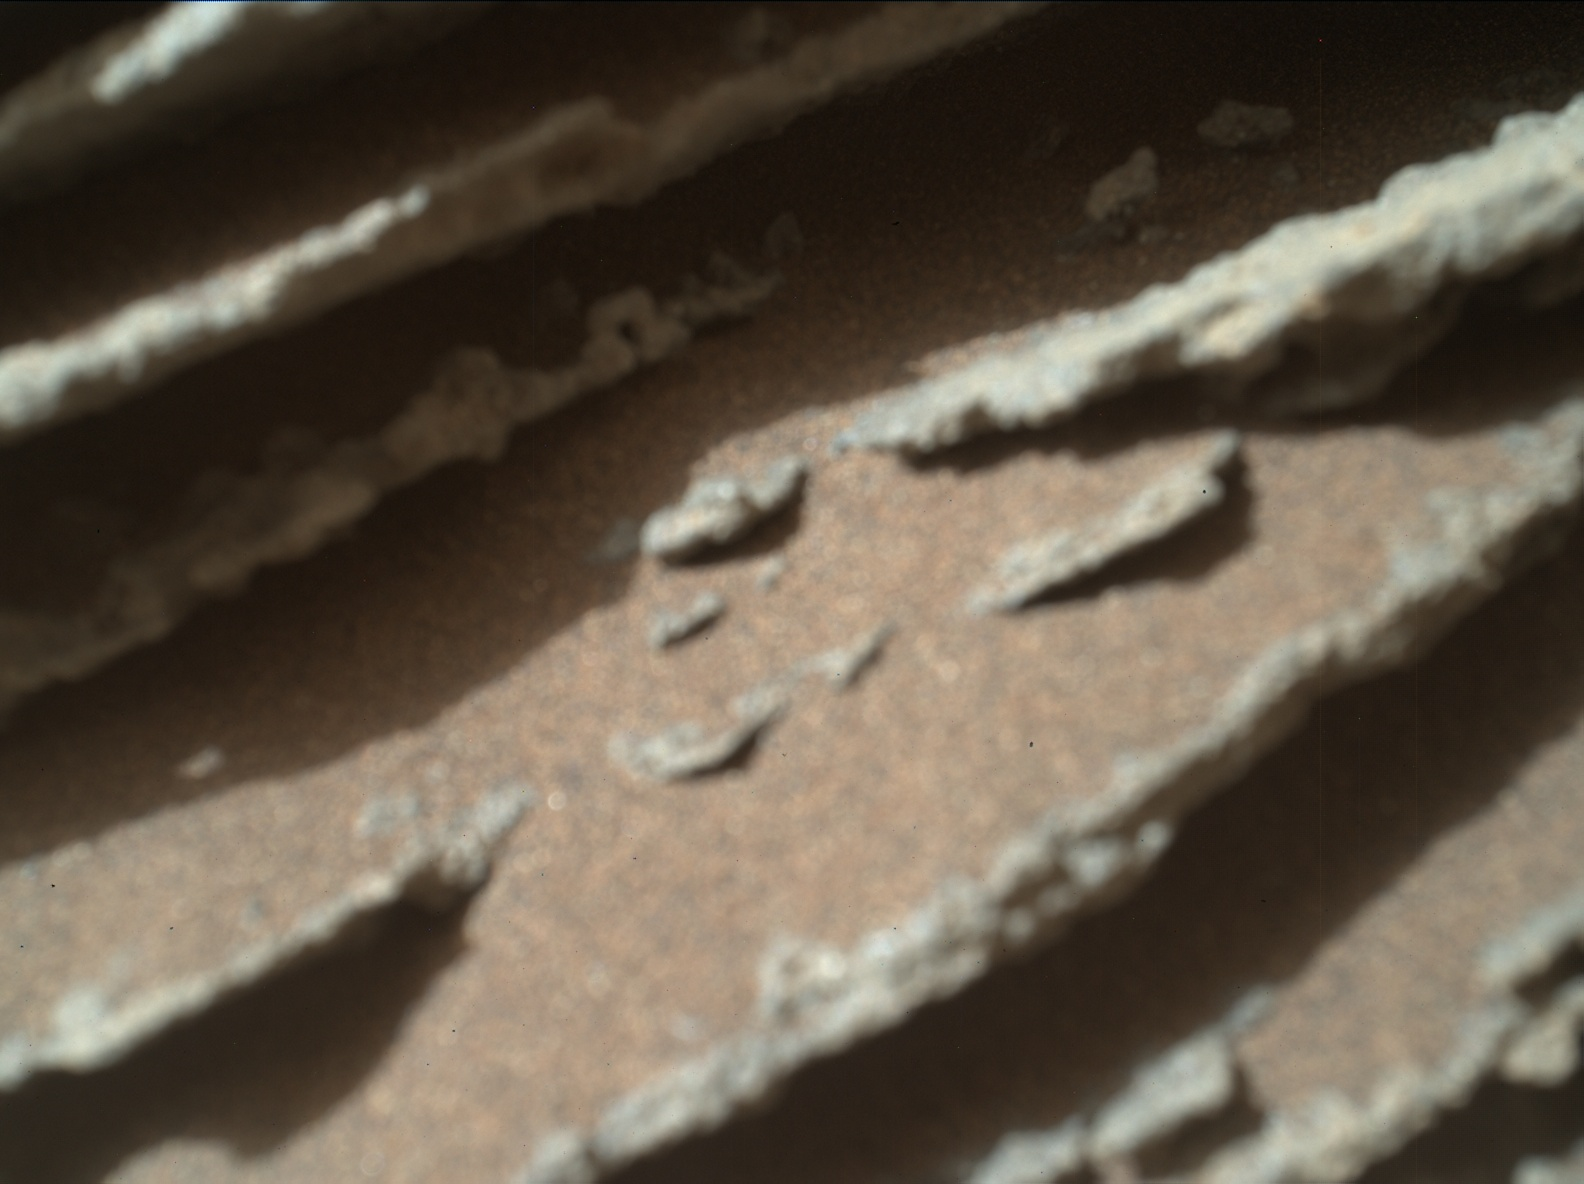 Nasa's Mars rover Curiosity acquired this image using its Mars Hand Lens Imager (MAHLI) on Sol 974